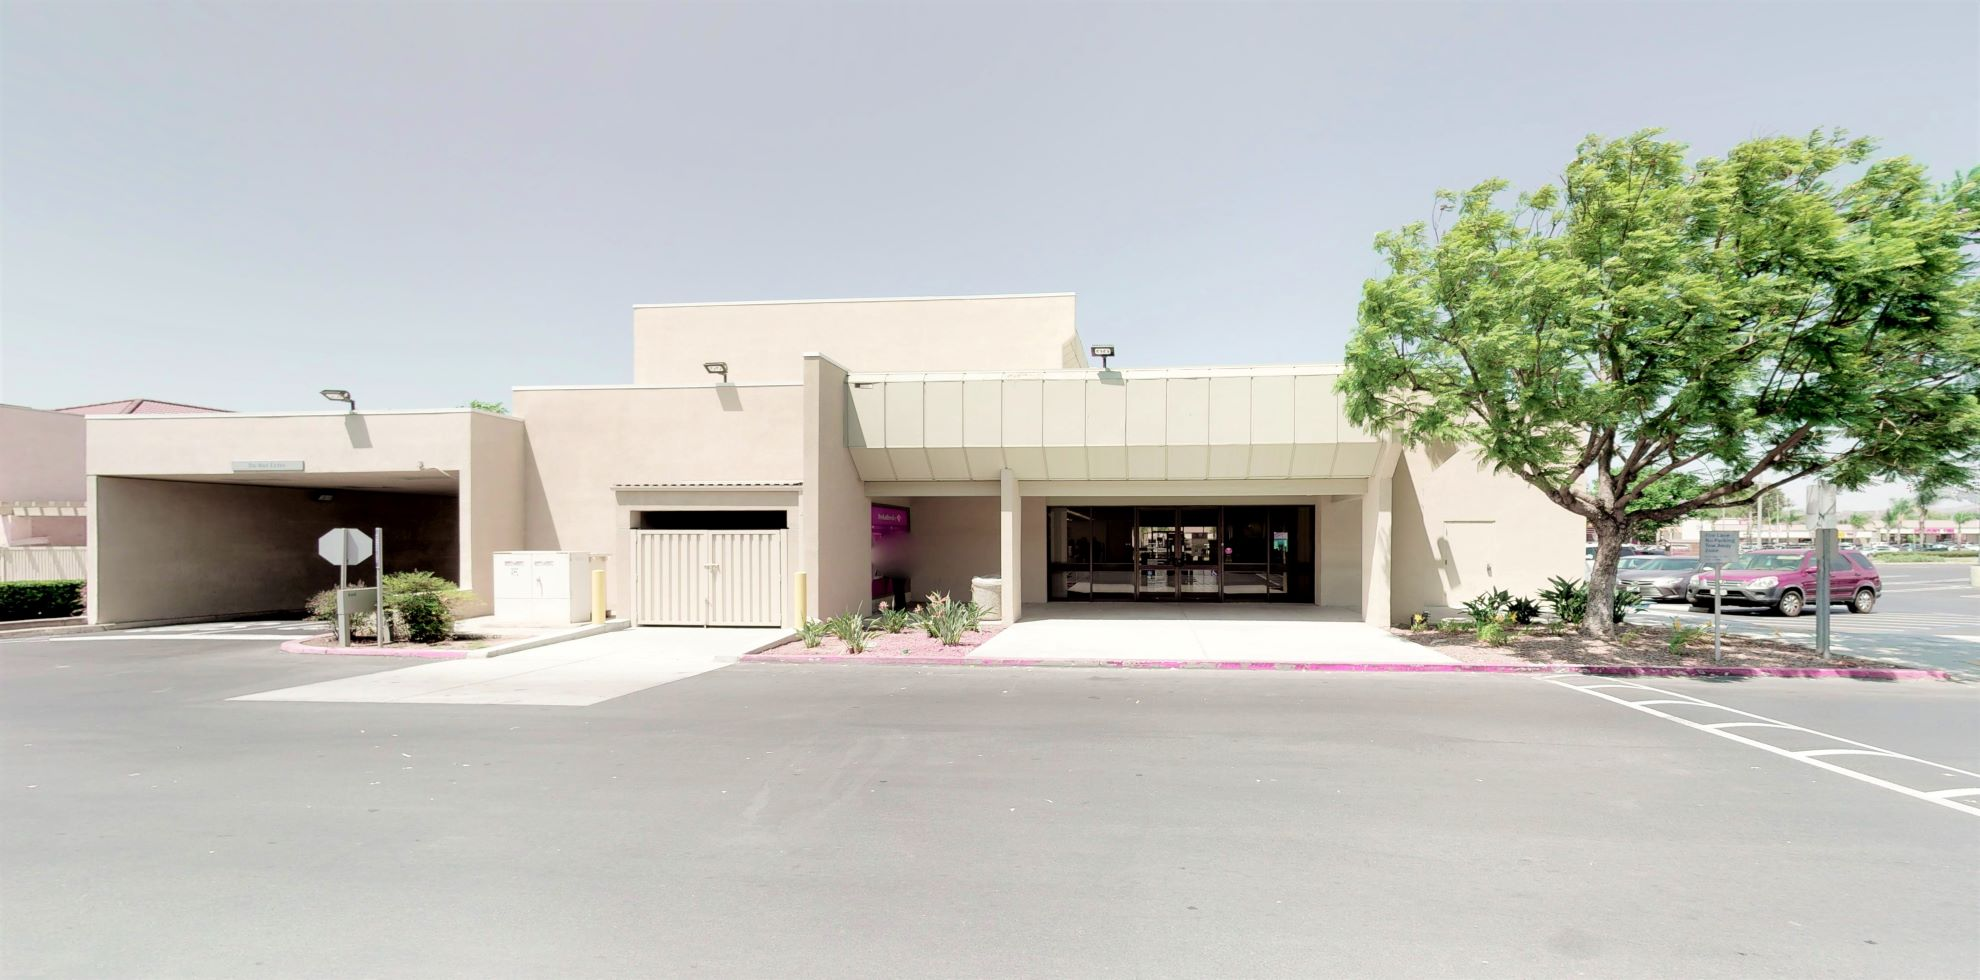 Bank of America financial center with drive-thru ATM | 9711 Mission Gorge Rd, Santee, CA 92071